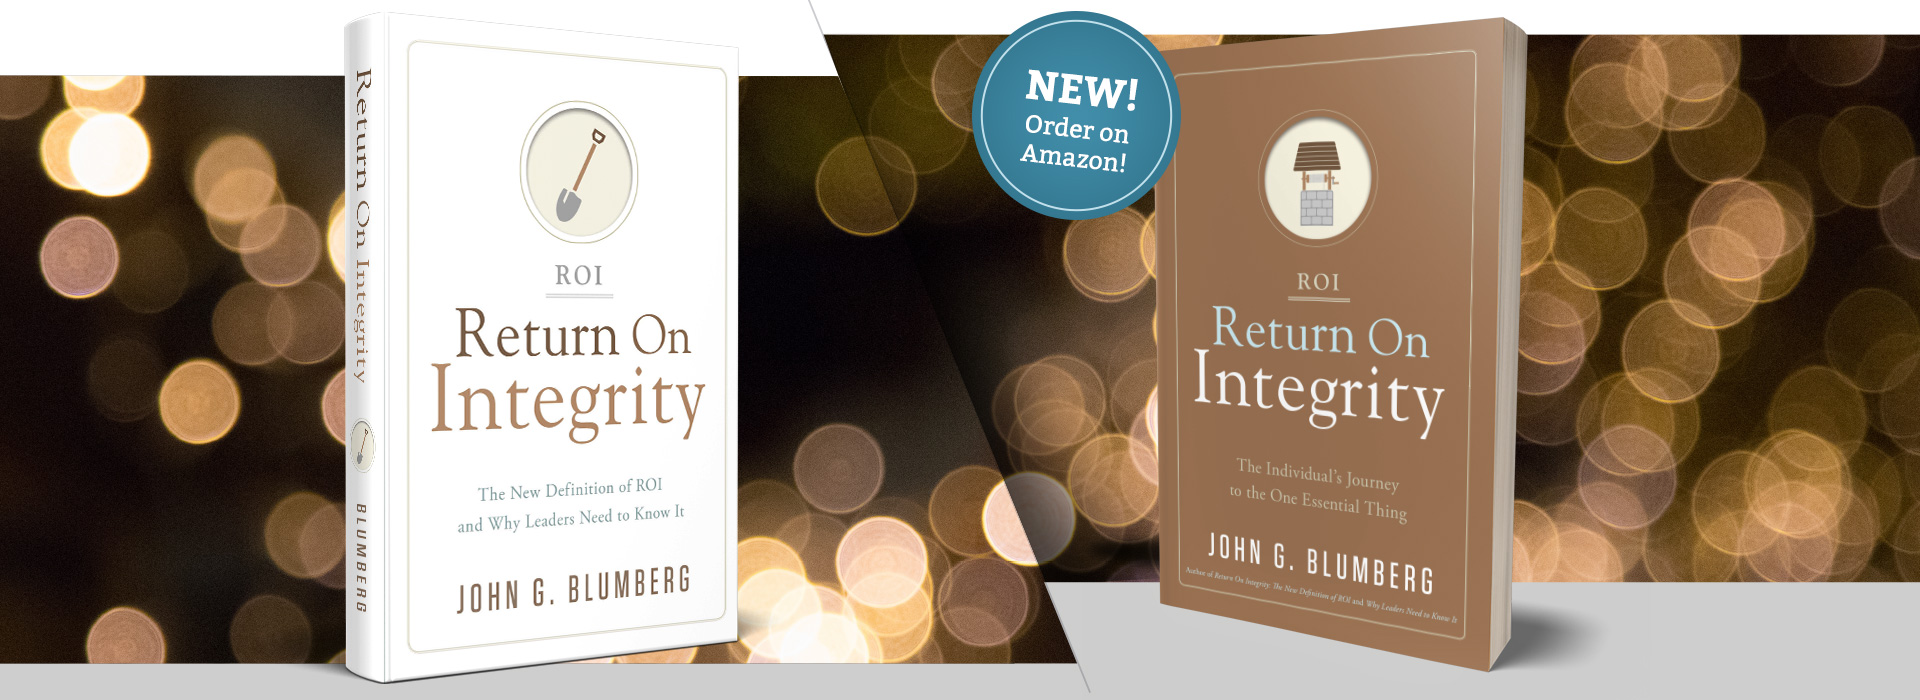 John Blumberg Return on Integrity